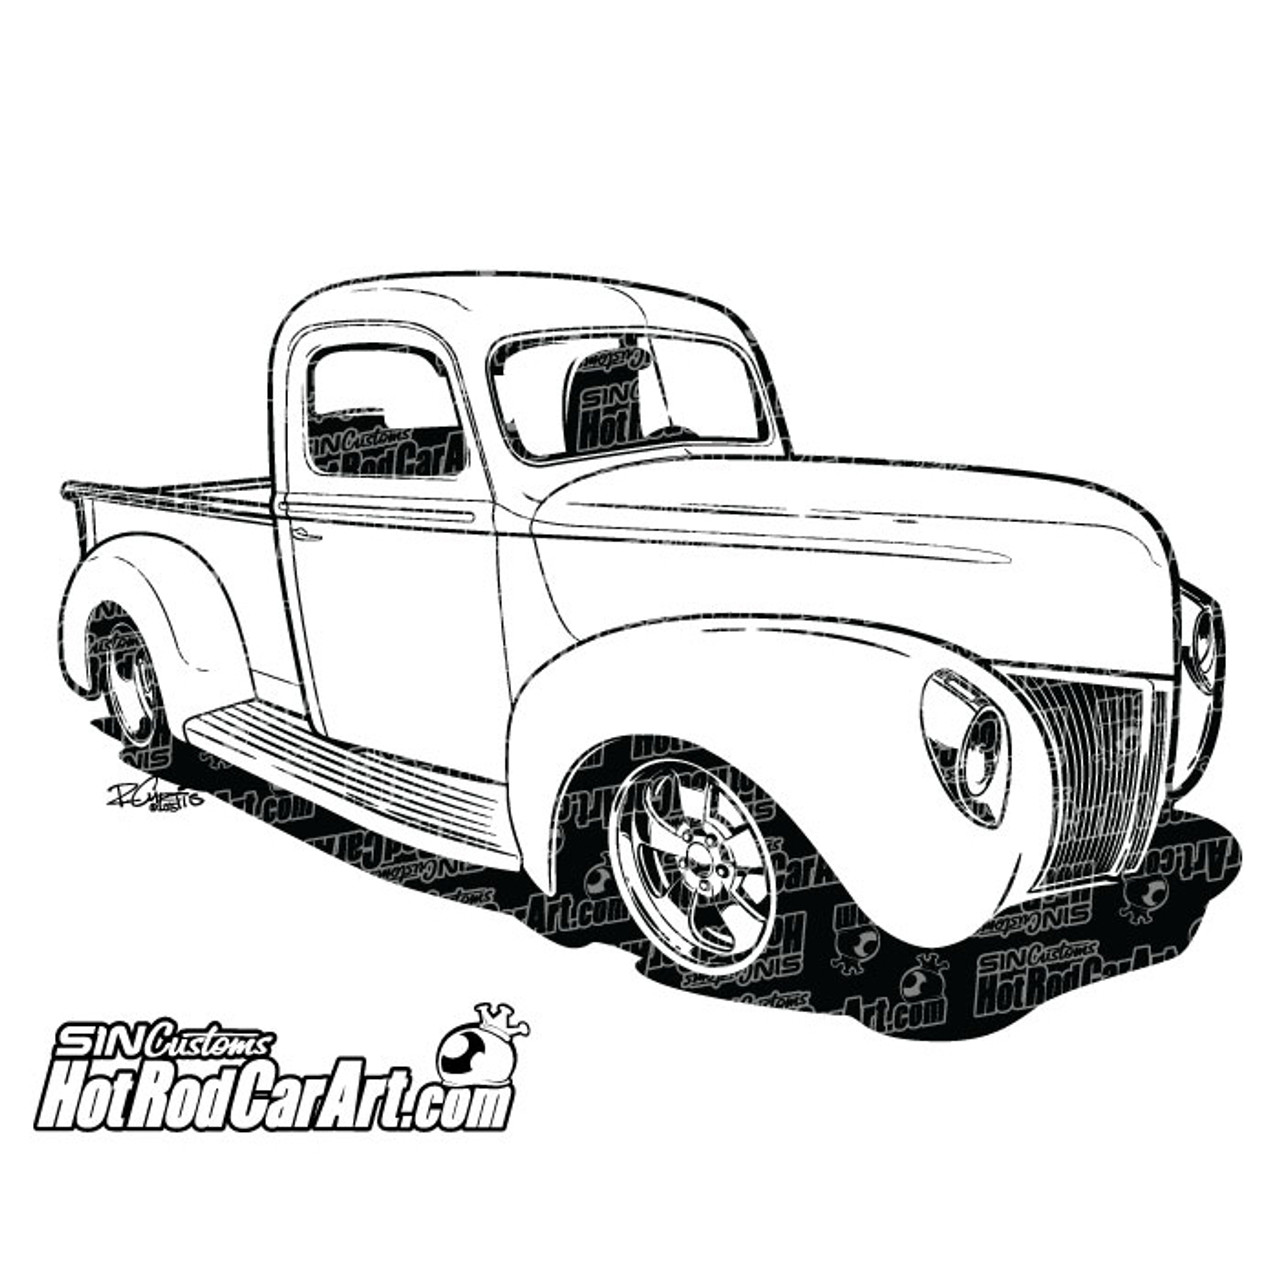 hight resolution of 1940 ford truck 2015 ryan curtis hotrodcarart com